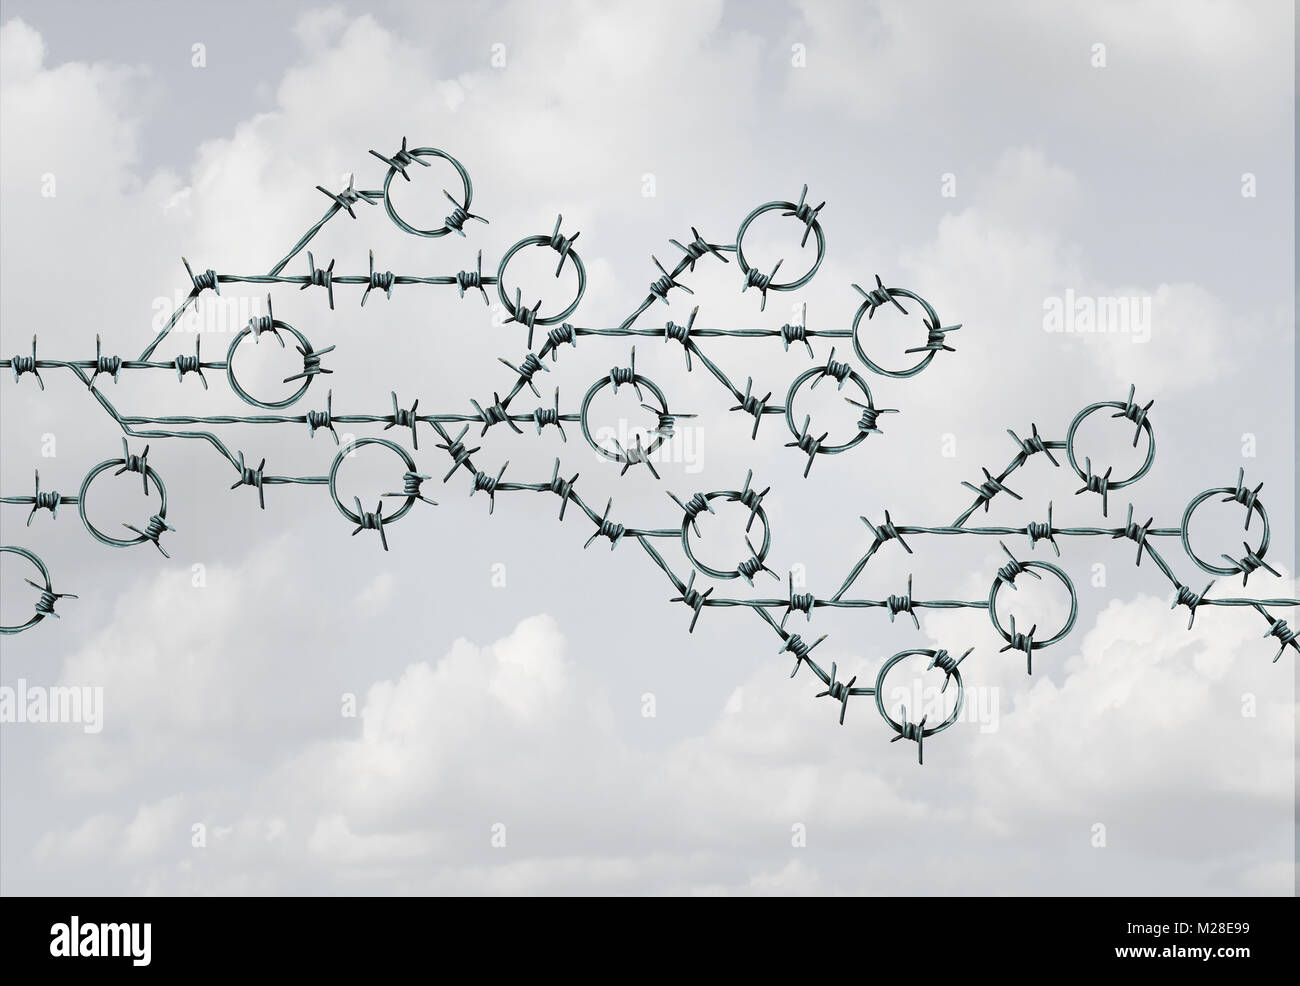 Technology security and cyber safety as barb wire shaped as a computer circuit symbol  as a tech threat protection - Stock Image